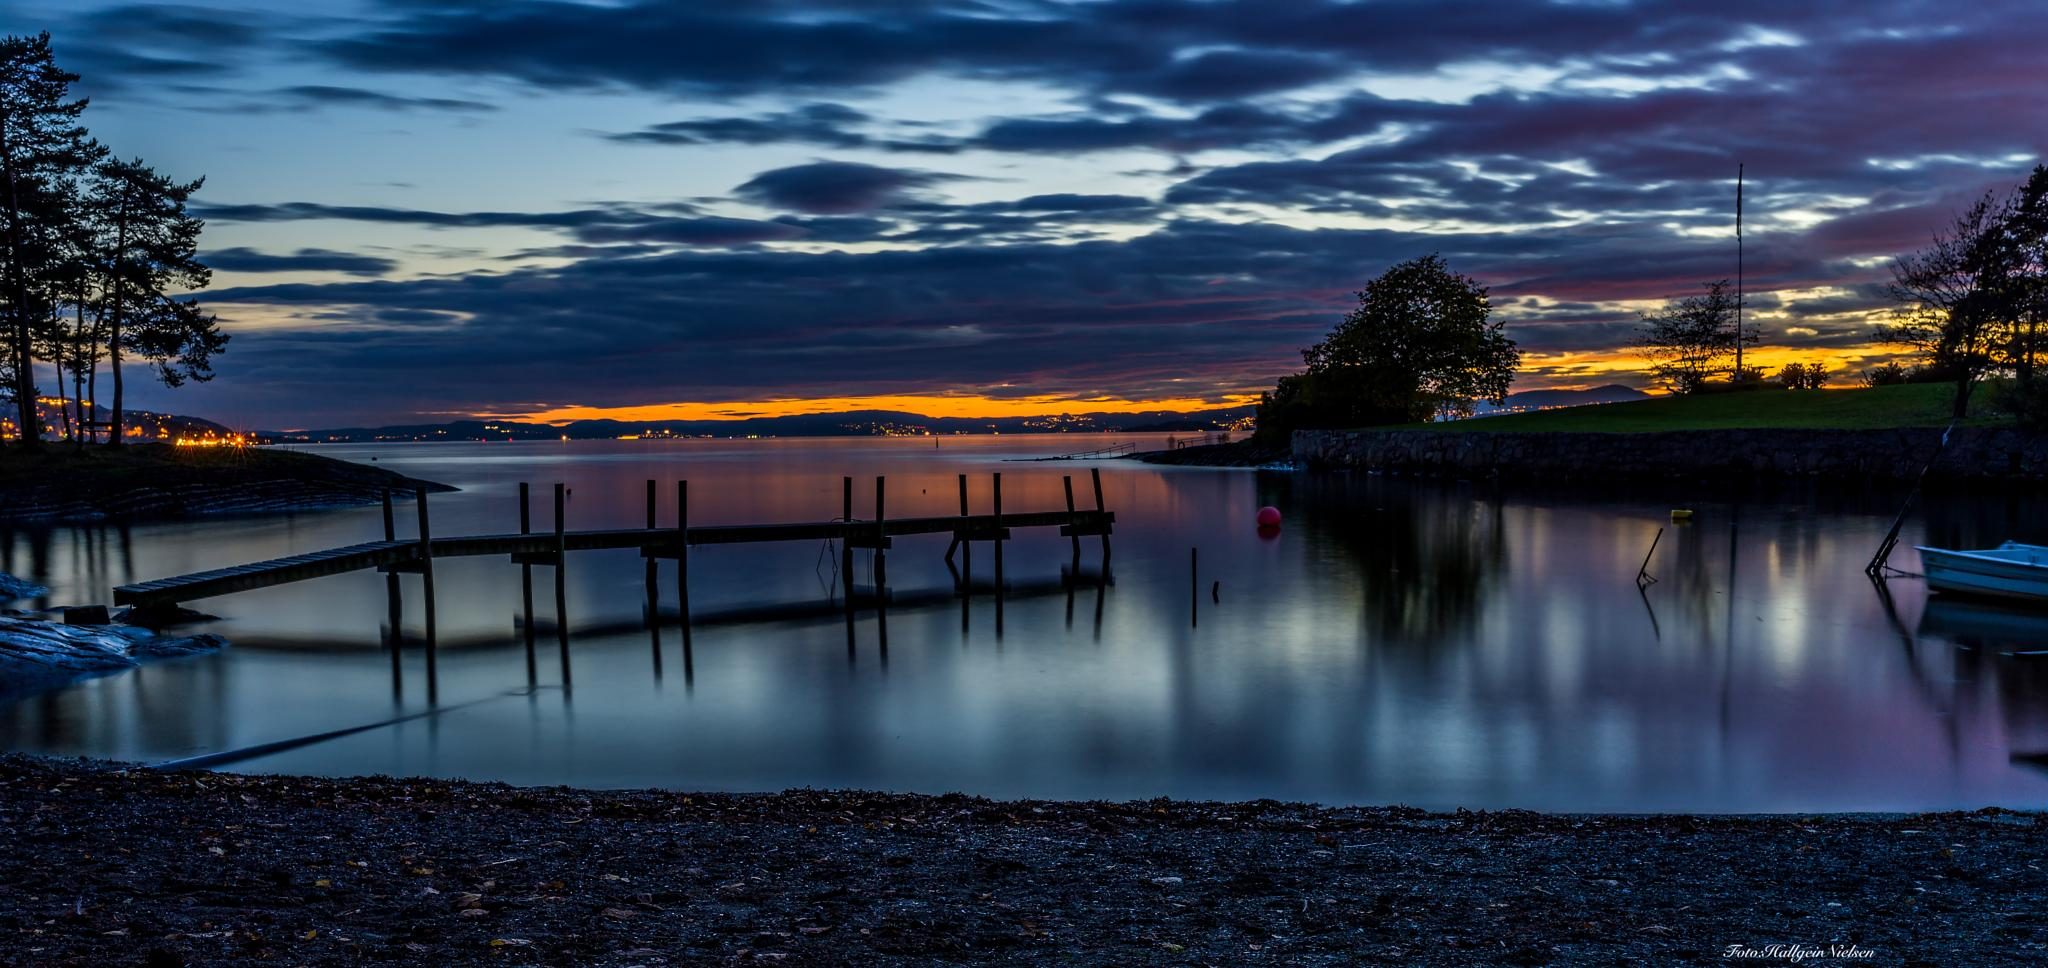 Sunset in Oslo today 20/10 to 14 by Hallgeir Nielsen